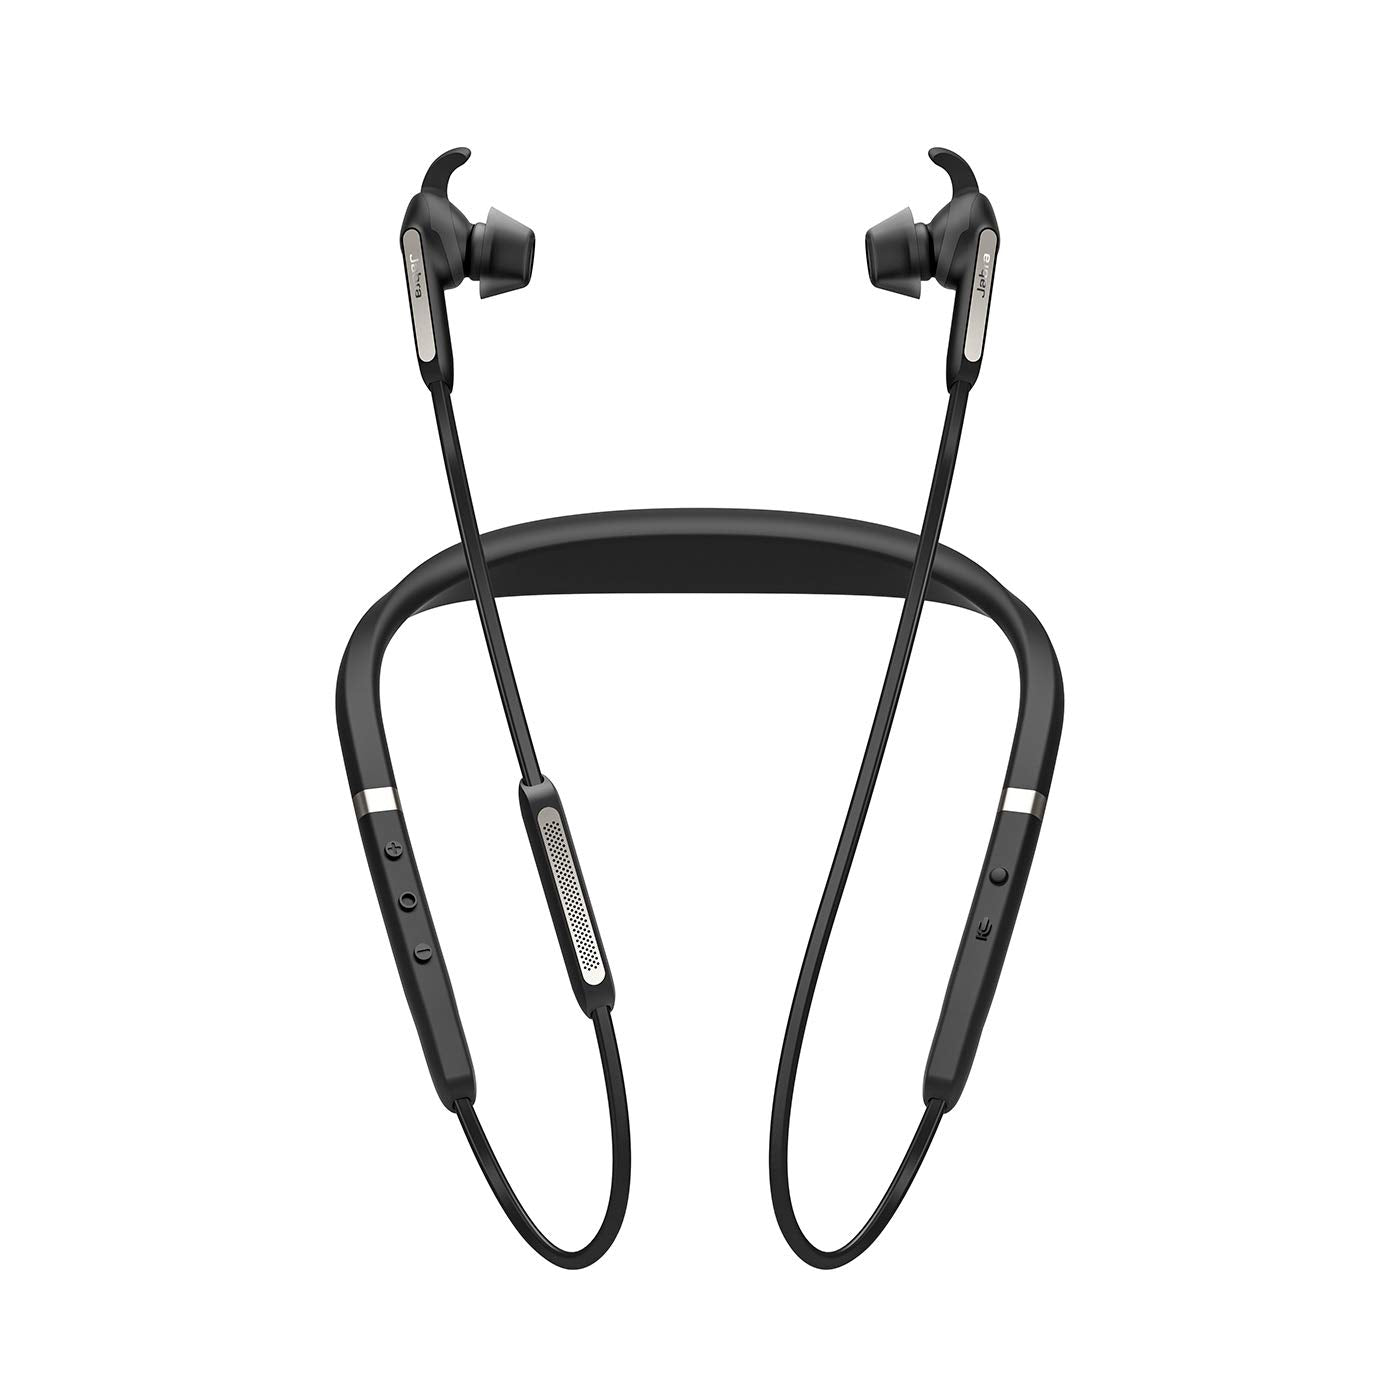 Jabra Elite 65e ANC (Active Noise Cancellation) Wireless Neckband Headphones